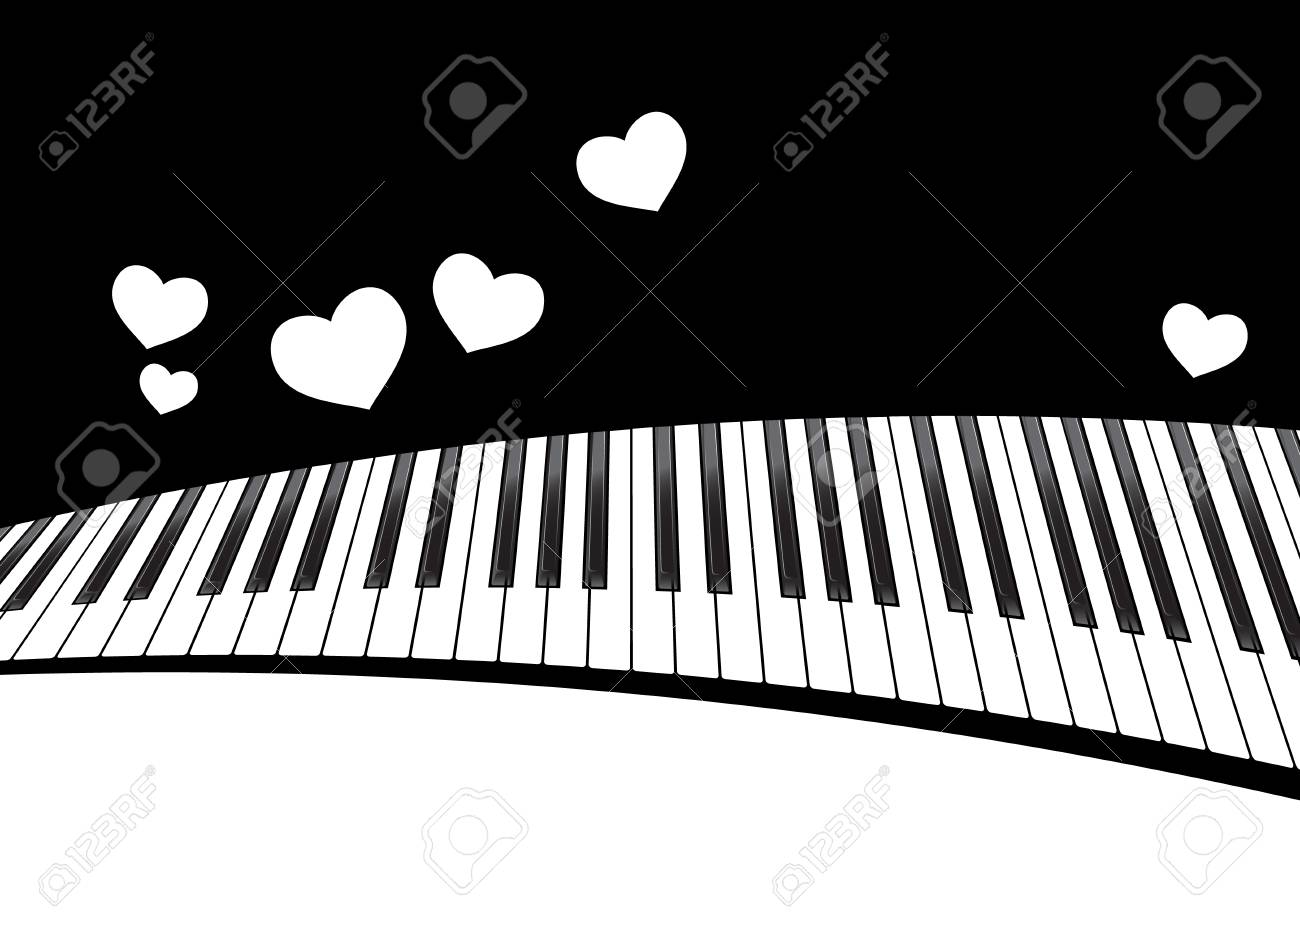 Piano Template With Hearts Royalty Free Cliparts, Vectors, And Stock ...